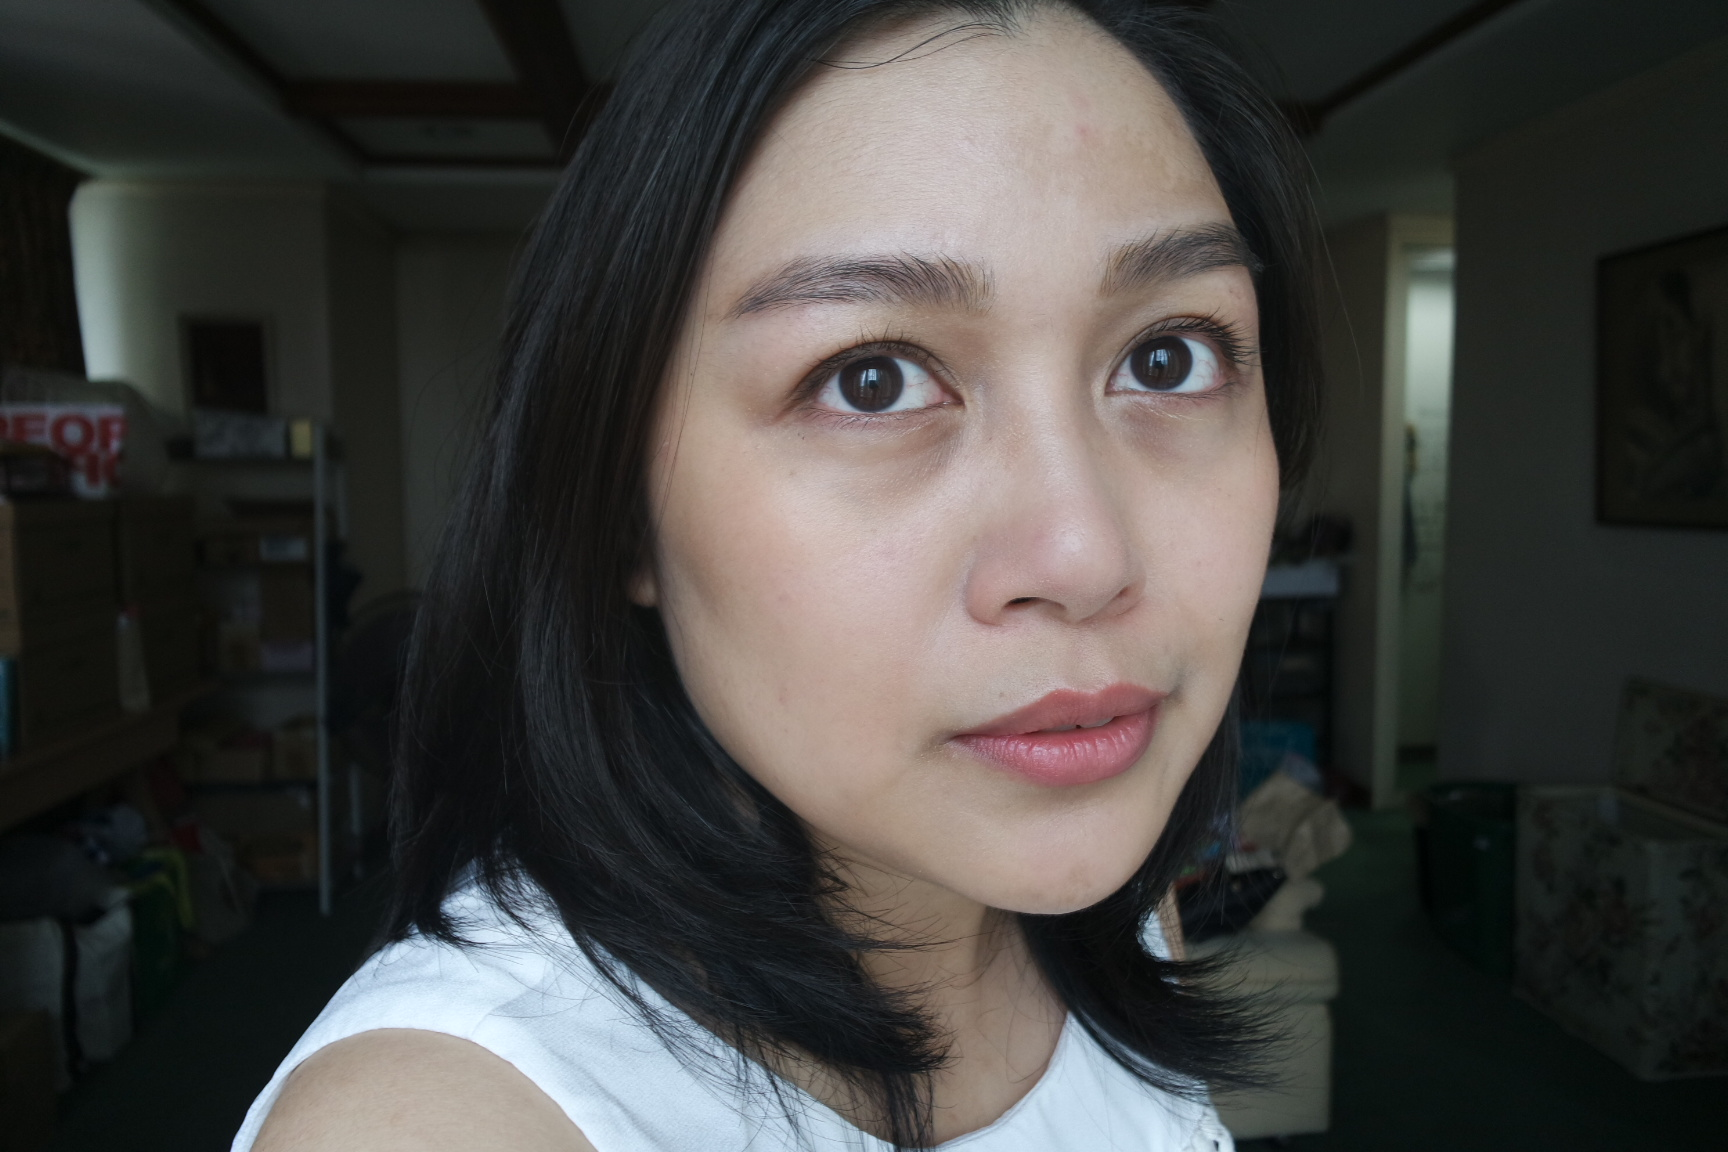 Applied the finishing cream prior to makeup then mixed it with foundation